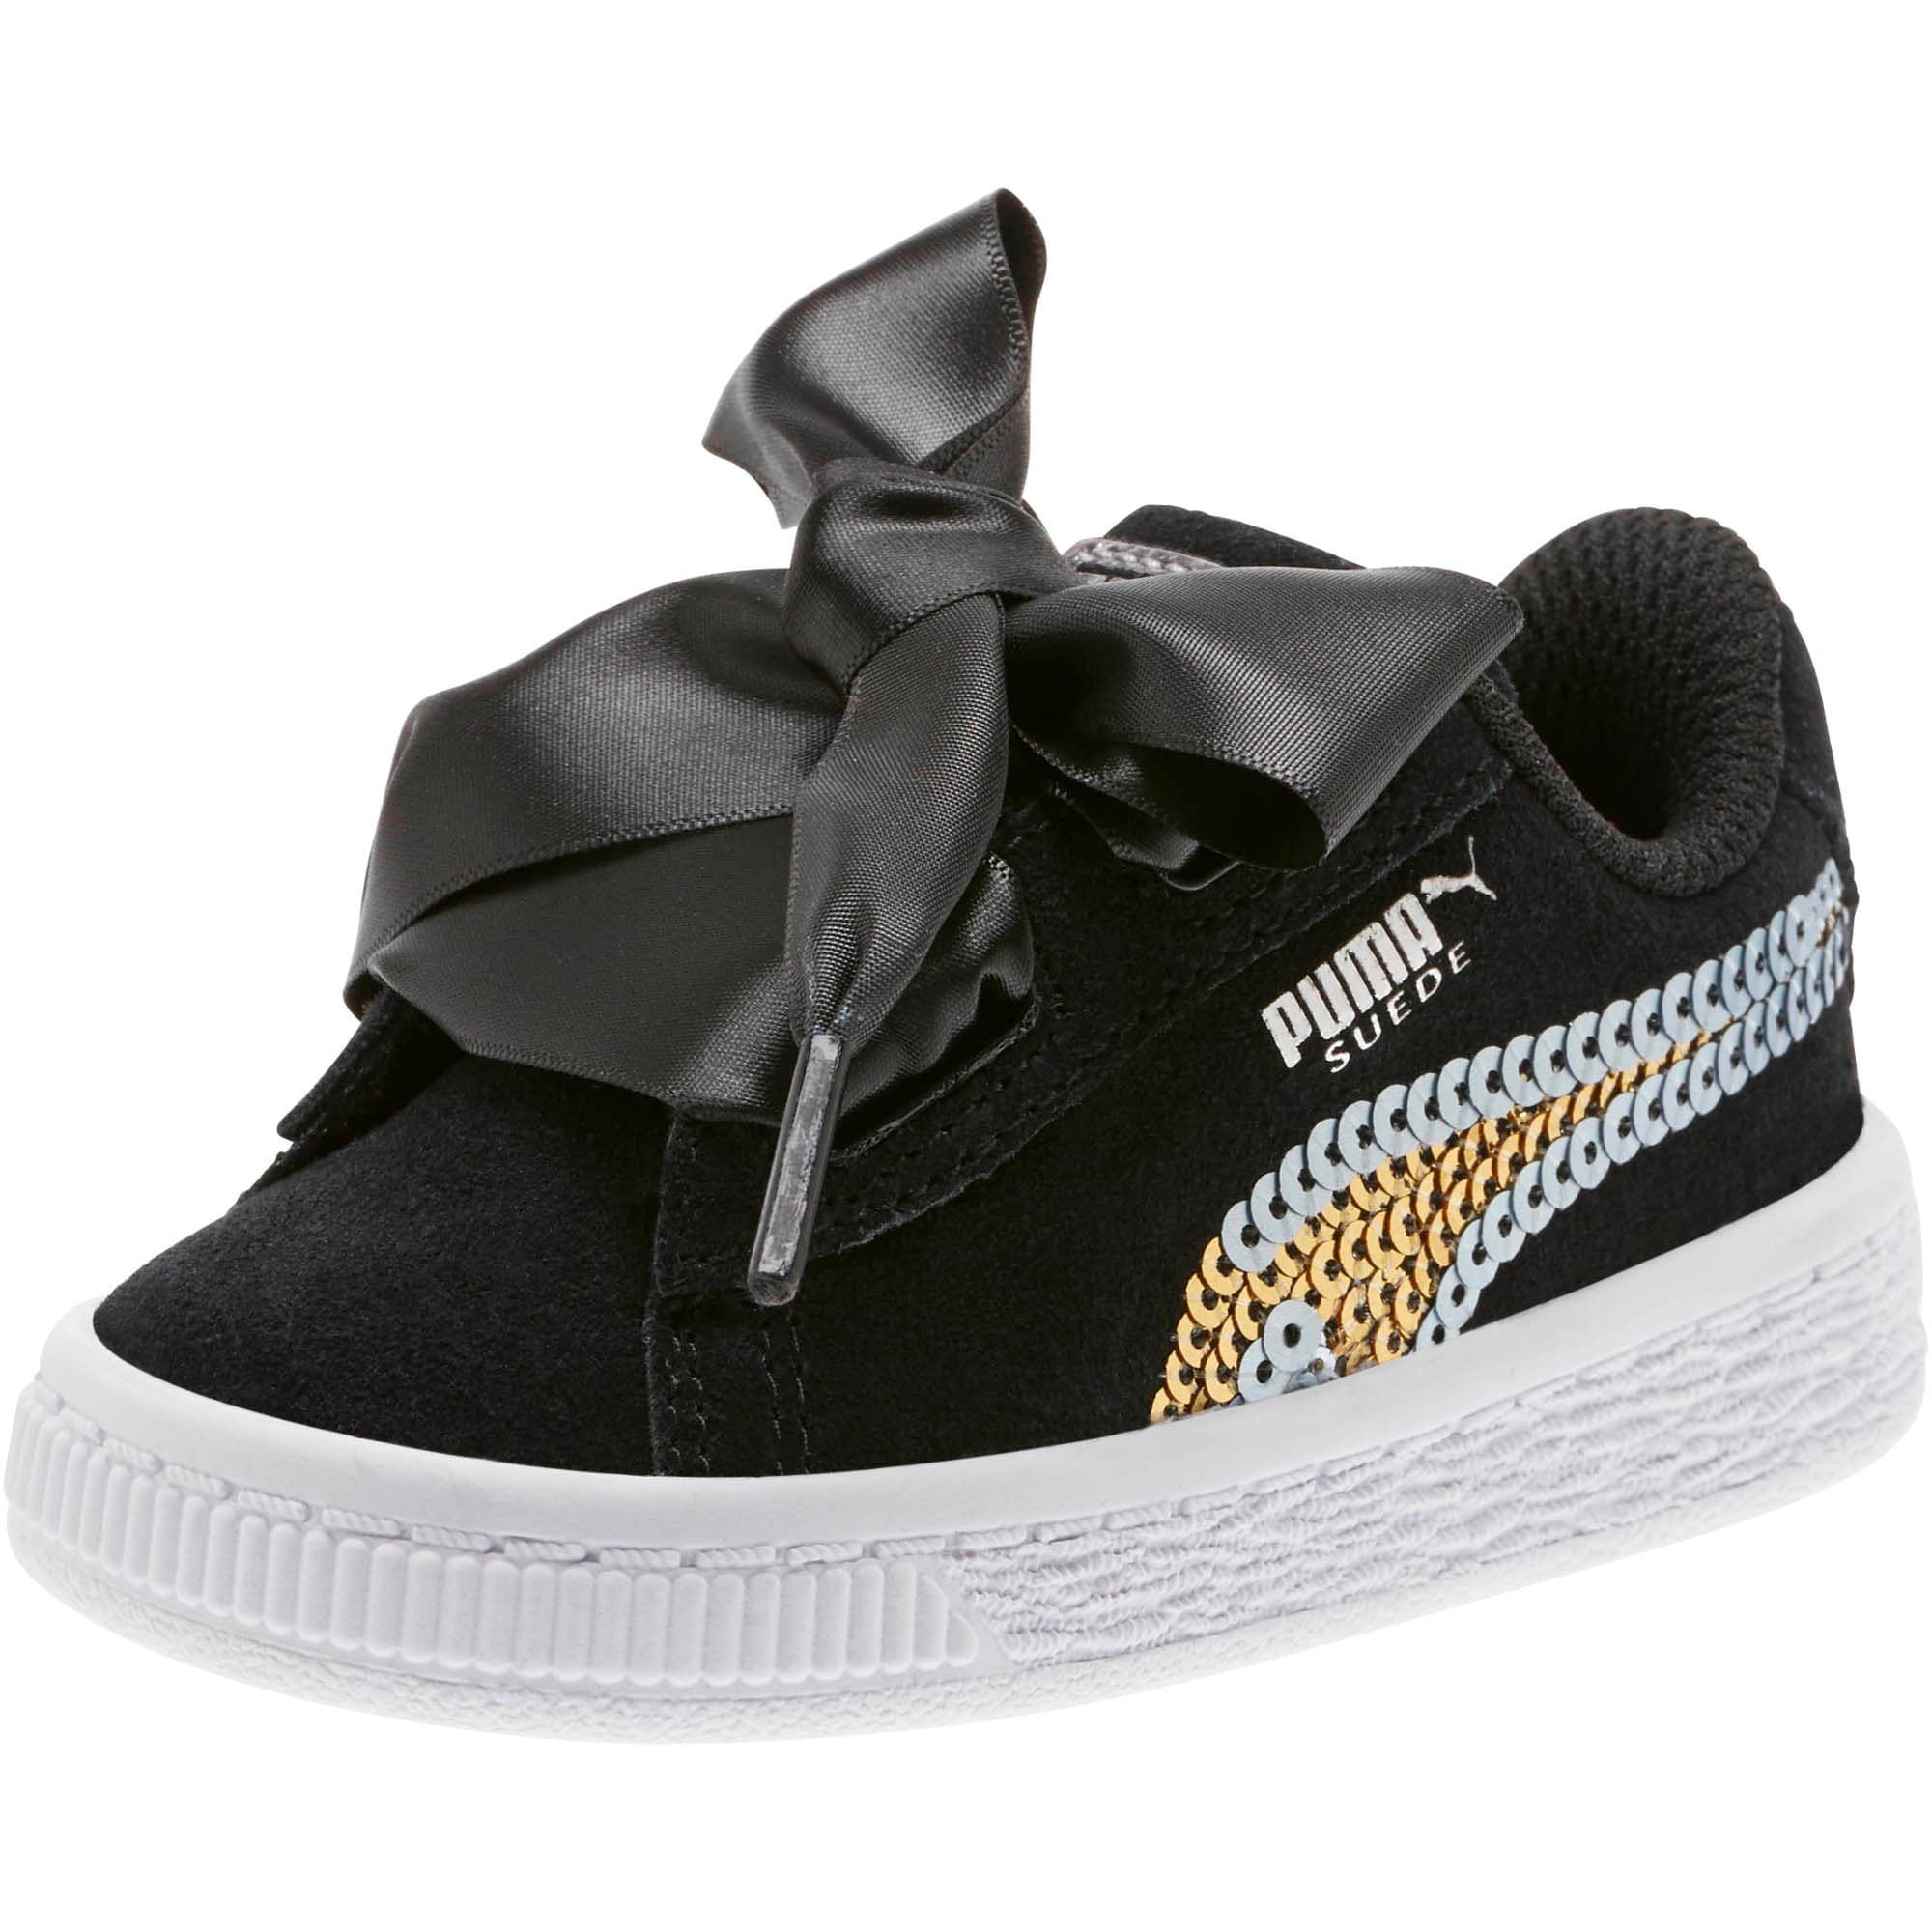 Zapatos Suede Heart Trailblazer Sequin para niña pequeña, Puma Black-Puma Team Gold, grande